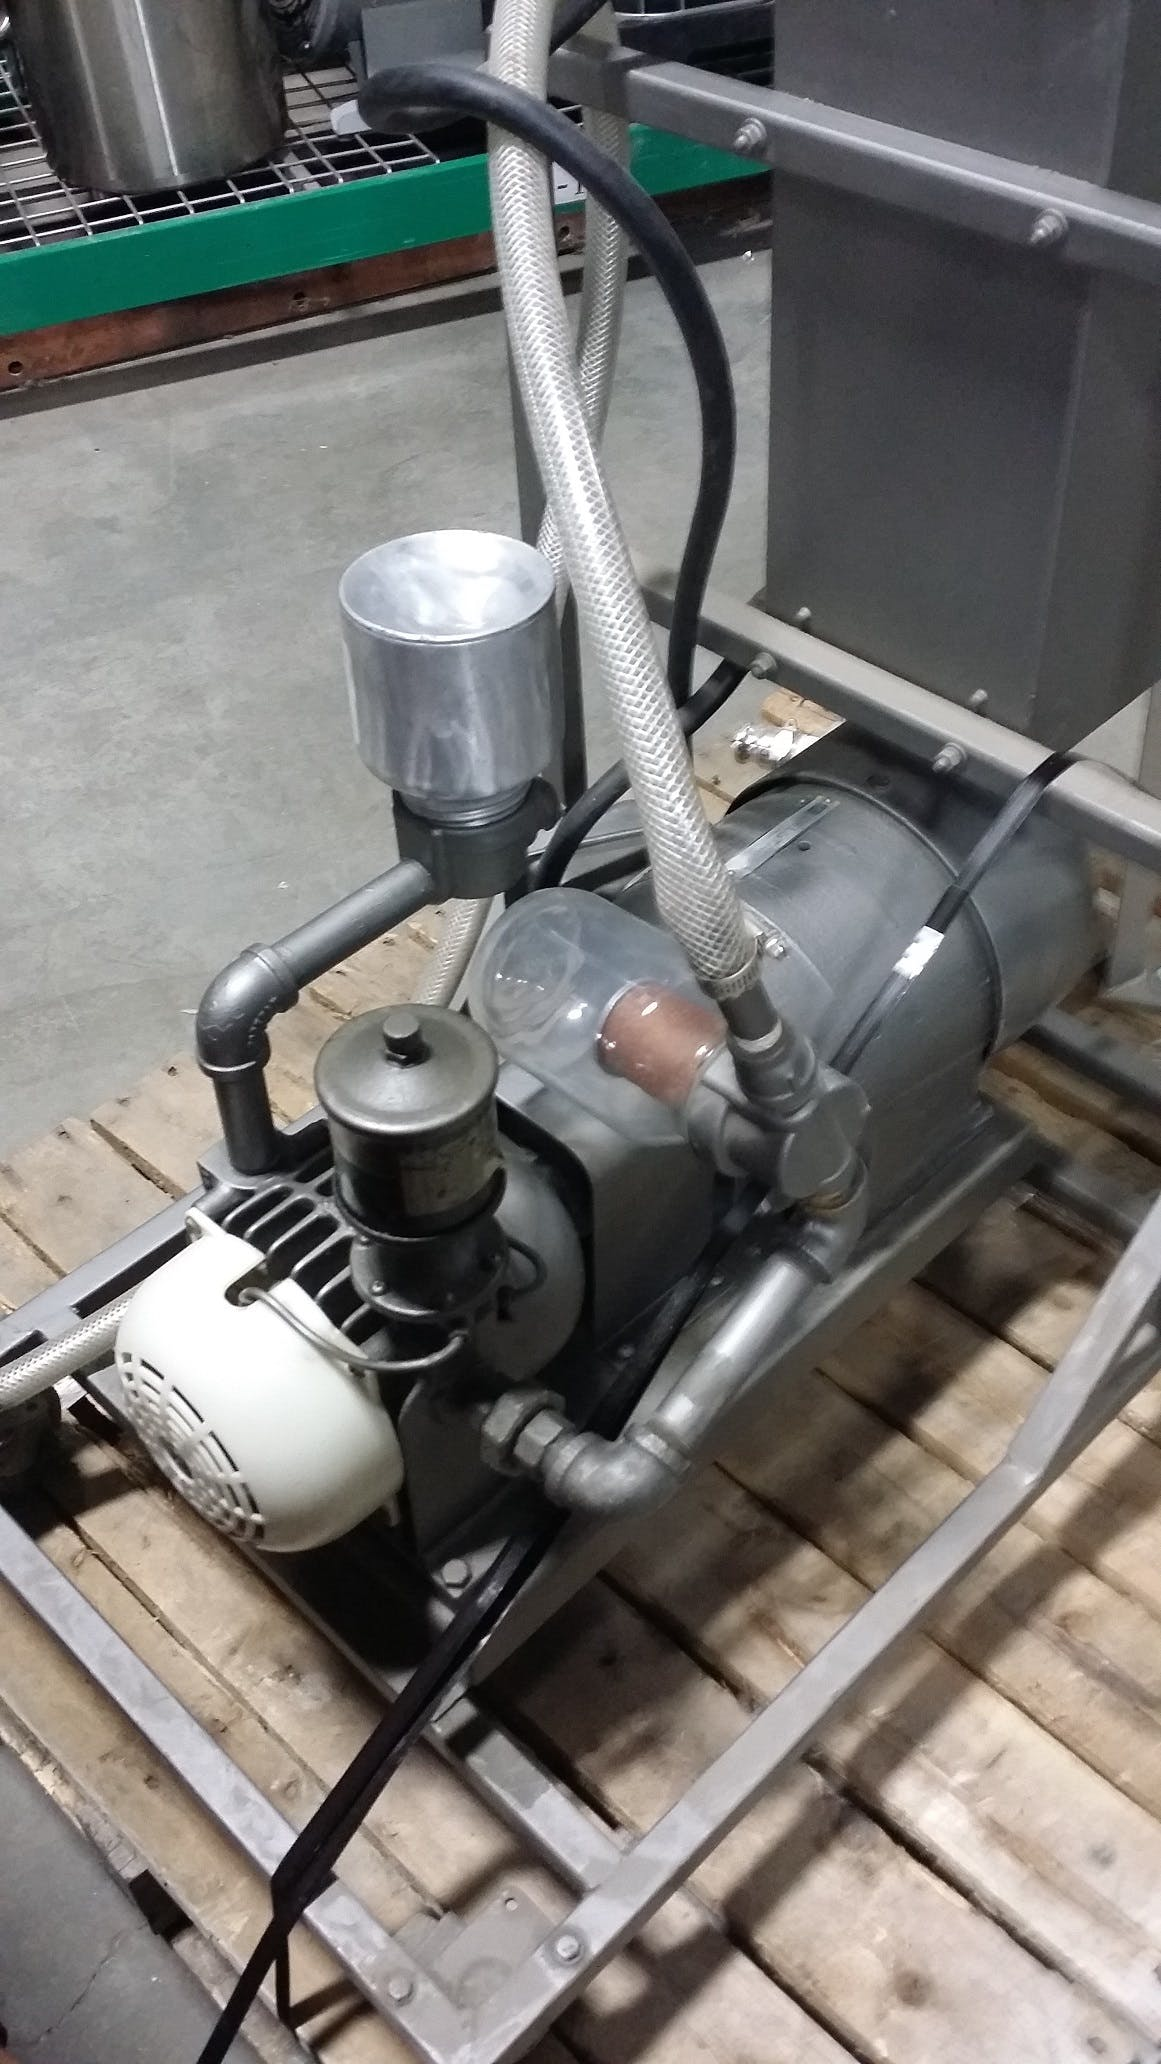 GAST MFG 2565-V2 Vacuum Pump Transfer pump sold by Aevos Equipment